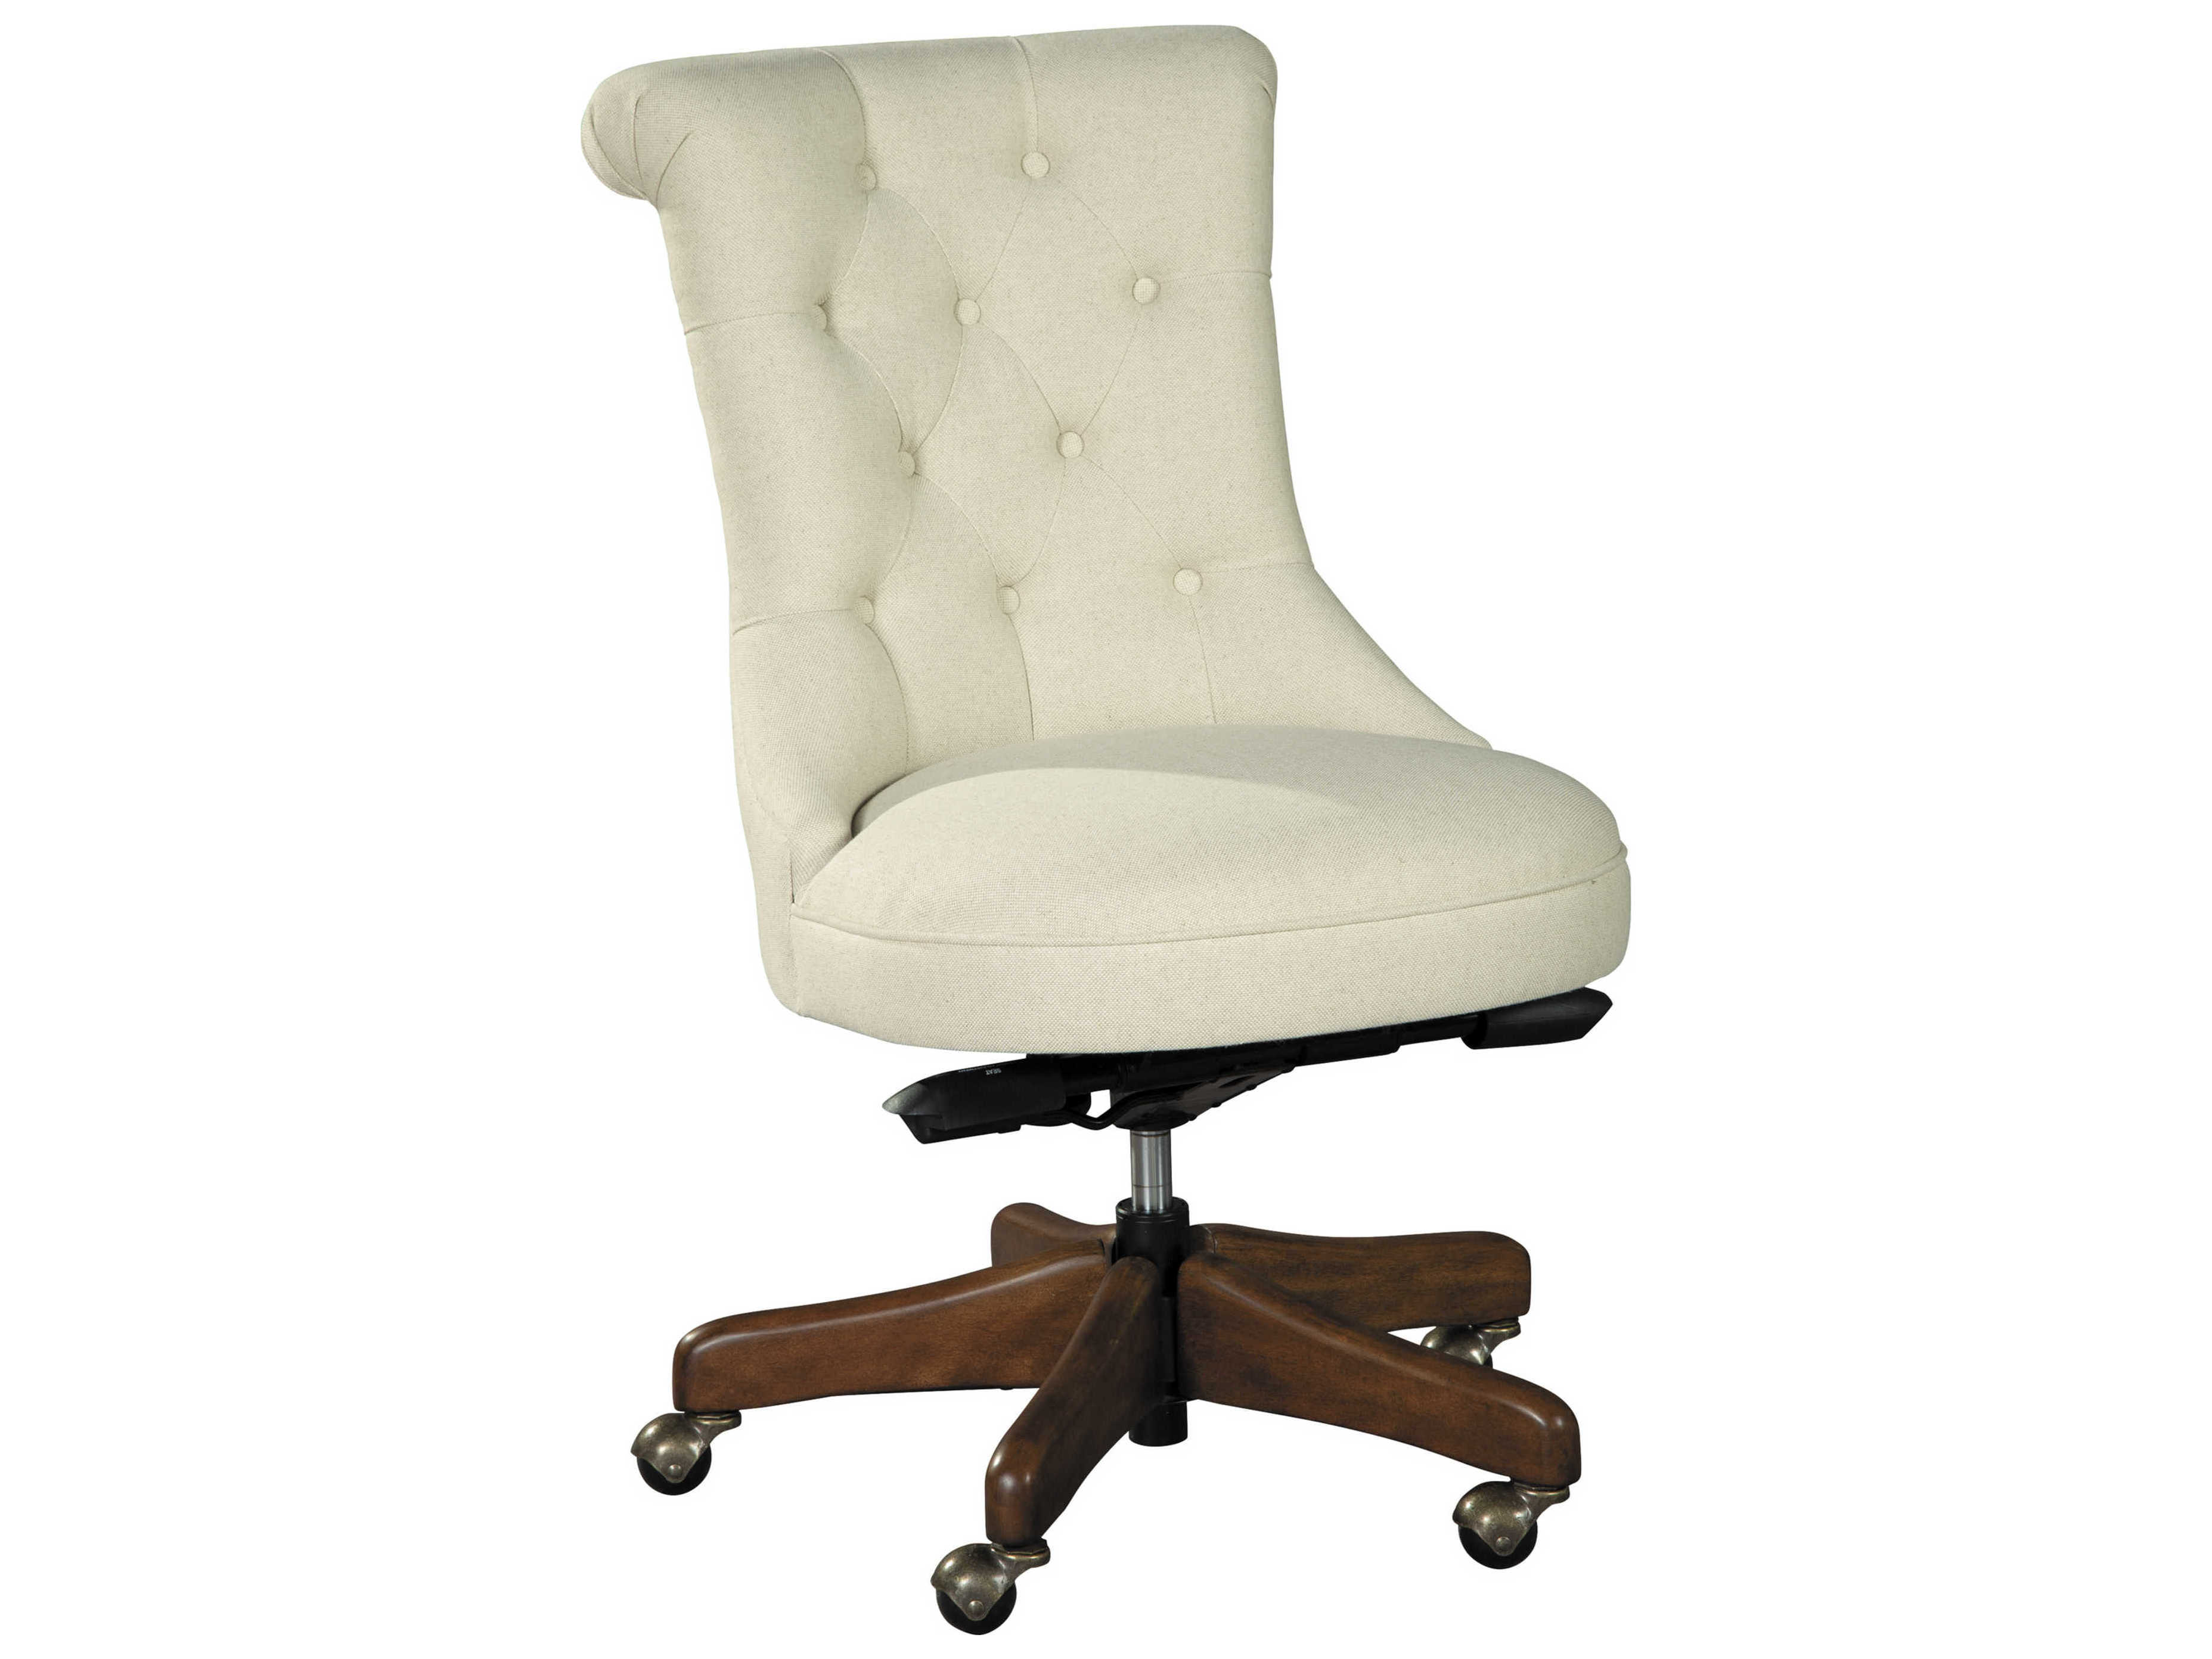 Hekman Office At Home Special Reserve Executive Chair Hk79226